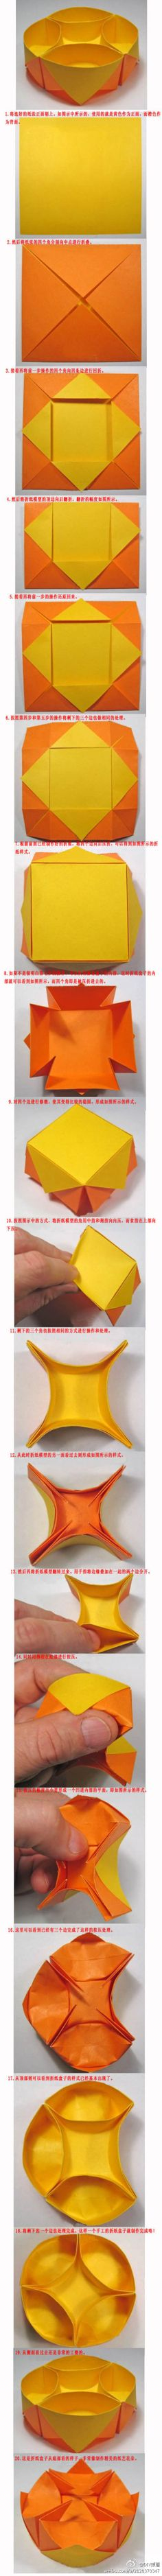 origami the envelope rectangular piece of paper sealed very